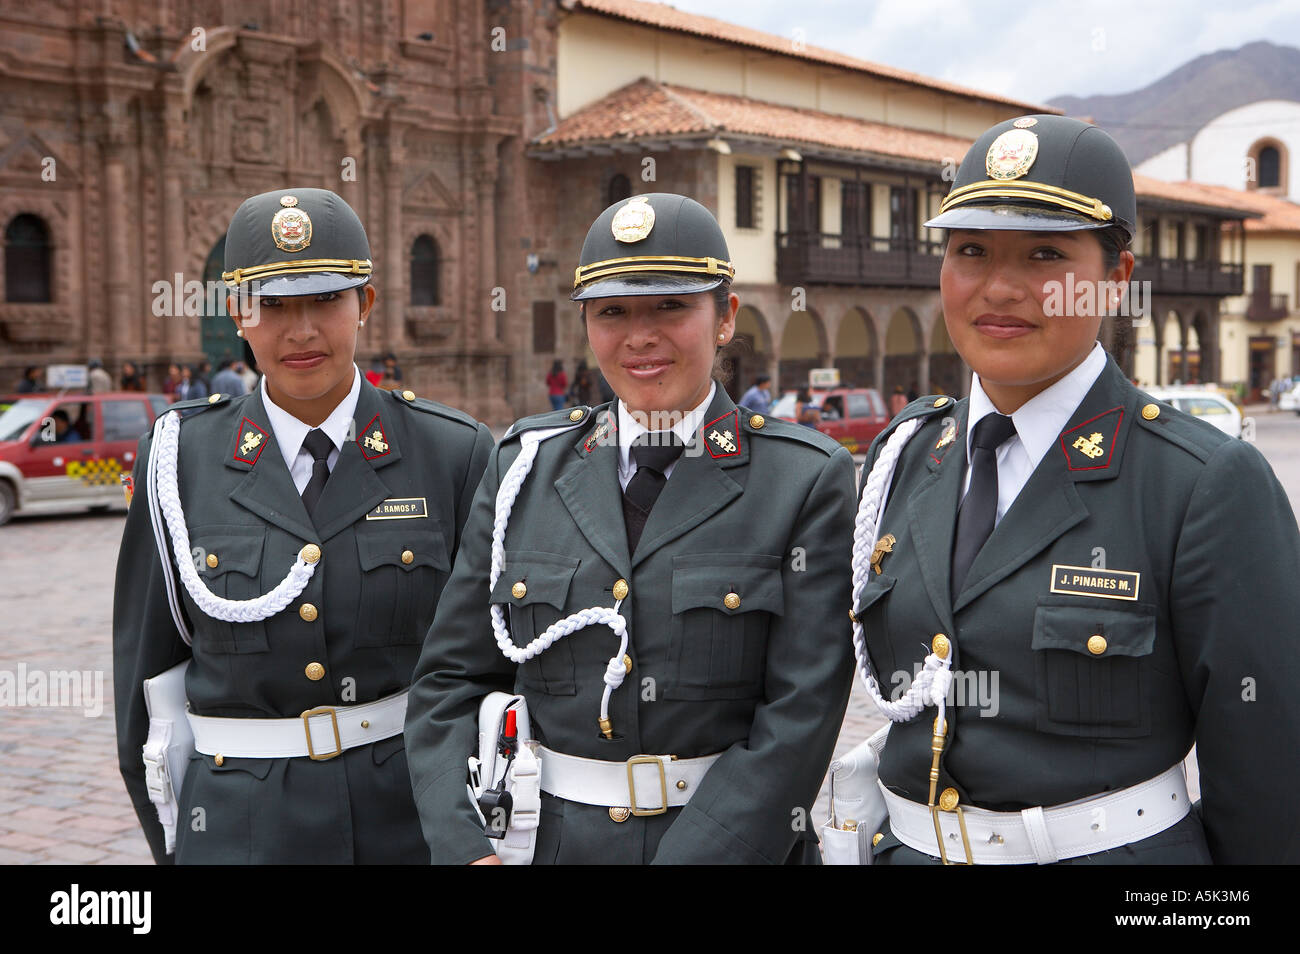 Policewomen High Resolution Stock Photography And Images Alamy